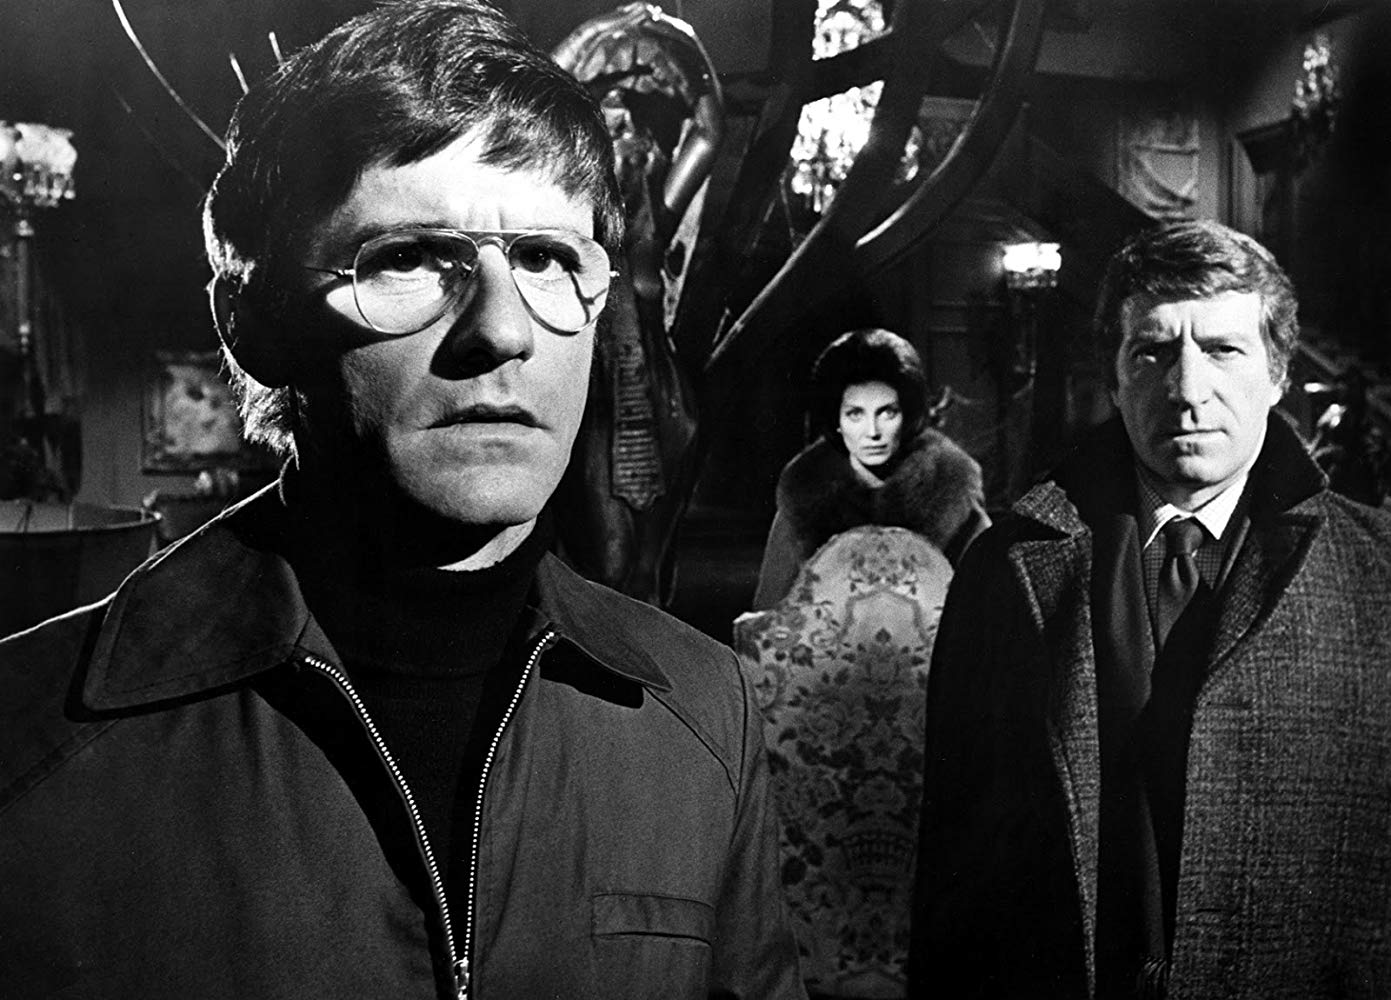 The team of parapsychologists - Roddy McDowall, Gayle Hunnicutt, Clive Revill - in The Legend of Hell House (1973)